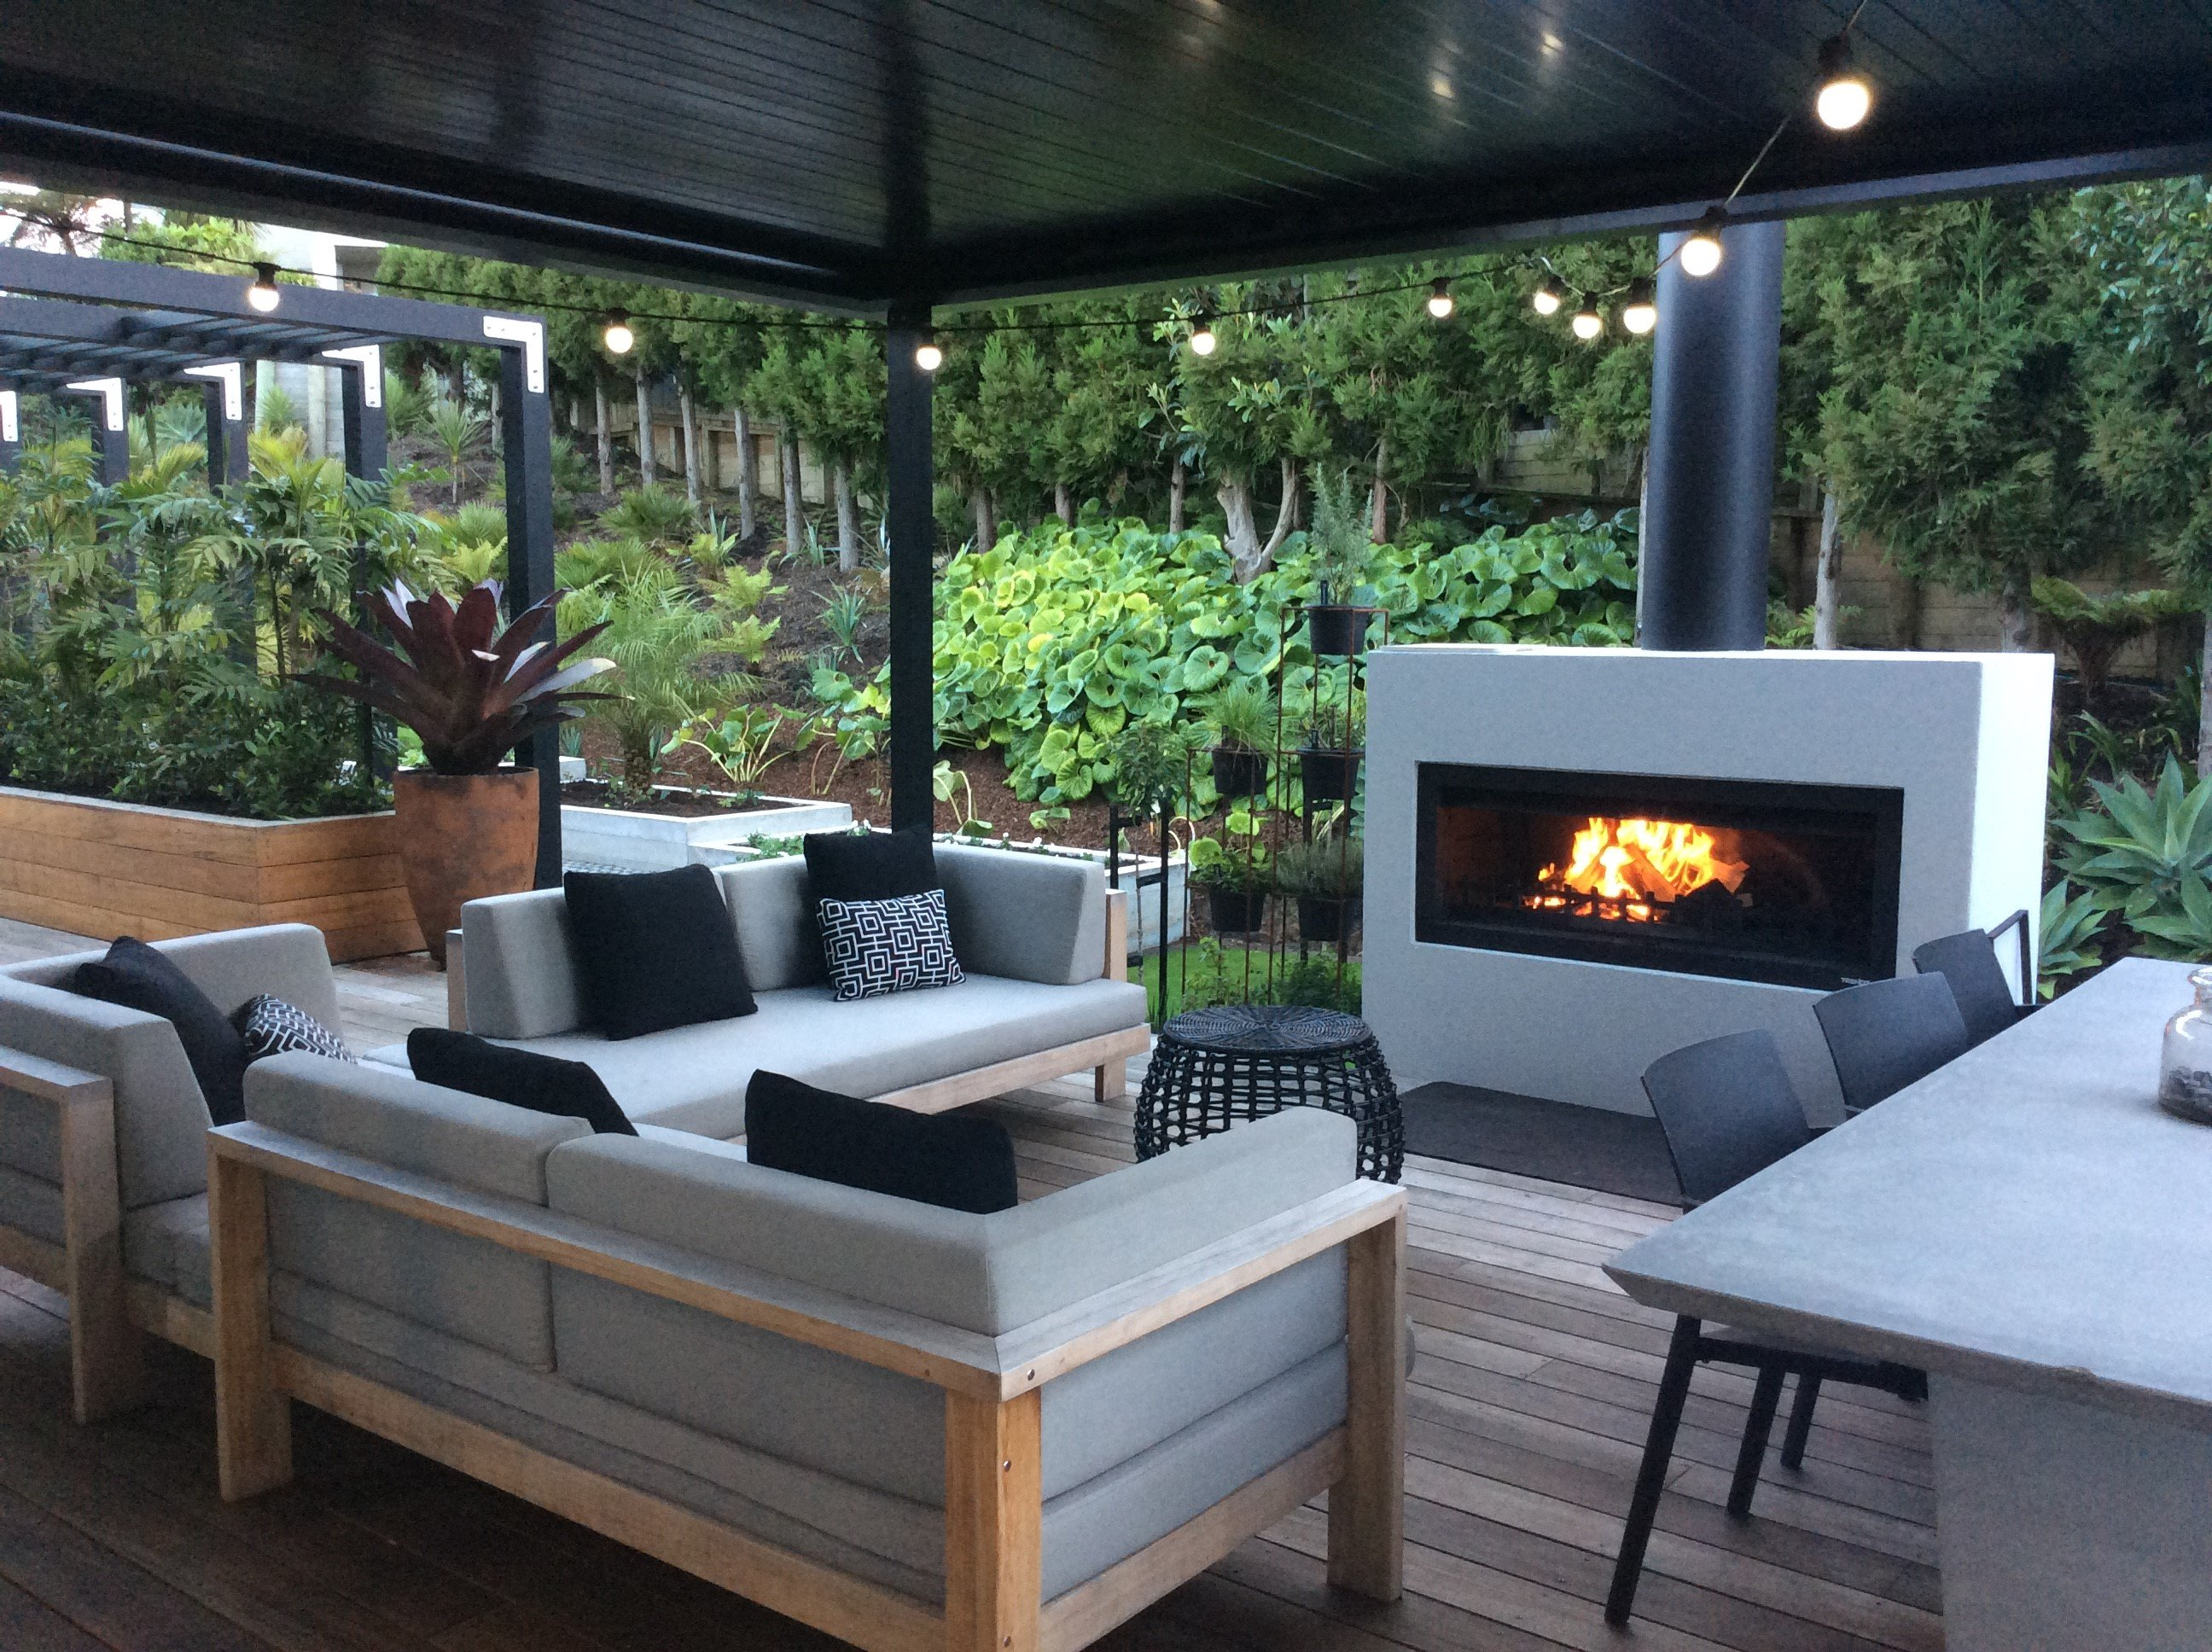 Outdoor entertaining fireplace